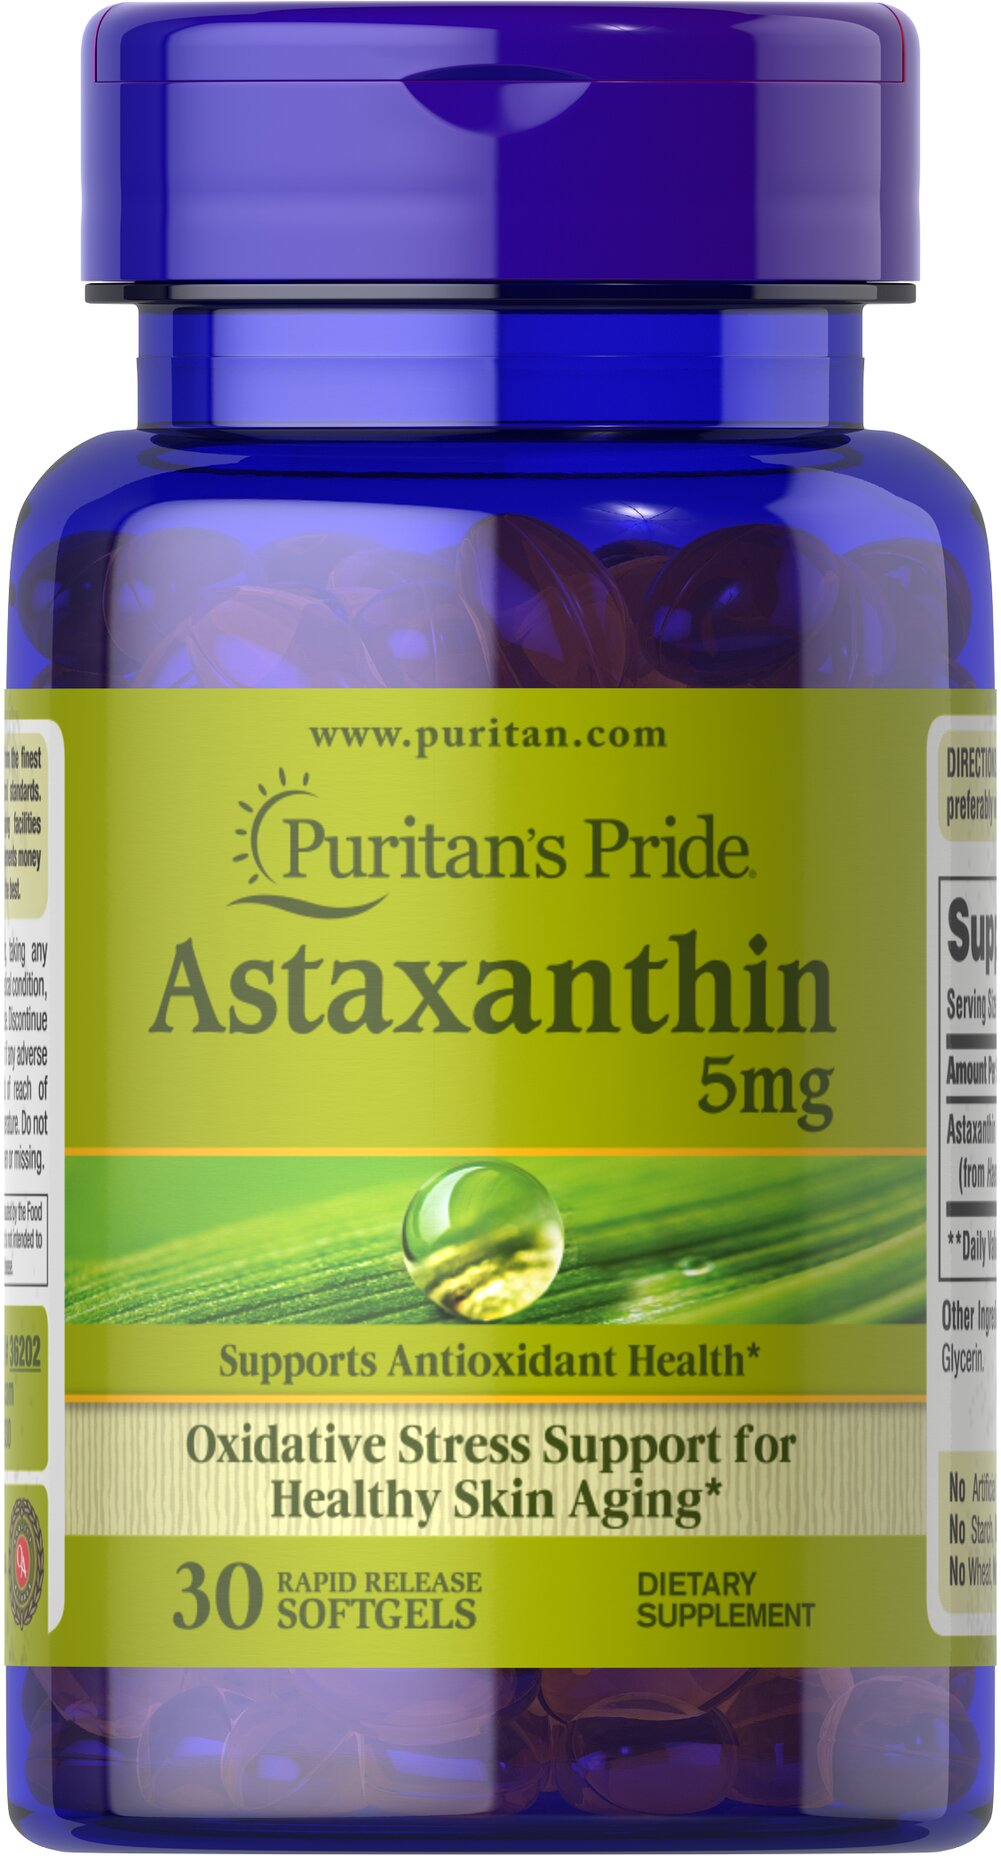 Natural Astaxanthin 5 mg <p>Astaxanthin promotes antioxidant health, which helps fight the cell damaging free radicals that can lead to oxidative stress which may contribute to the premature aging of cells.**</p><p></p><p></p> 30 Softgels 5 mg $14.94